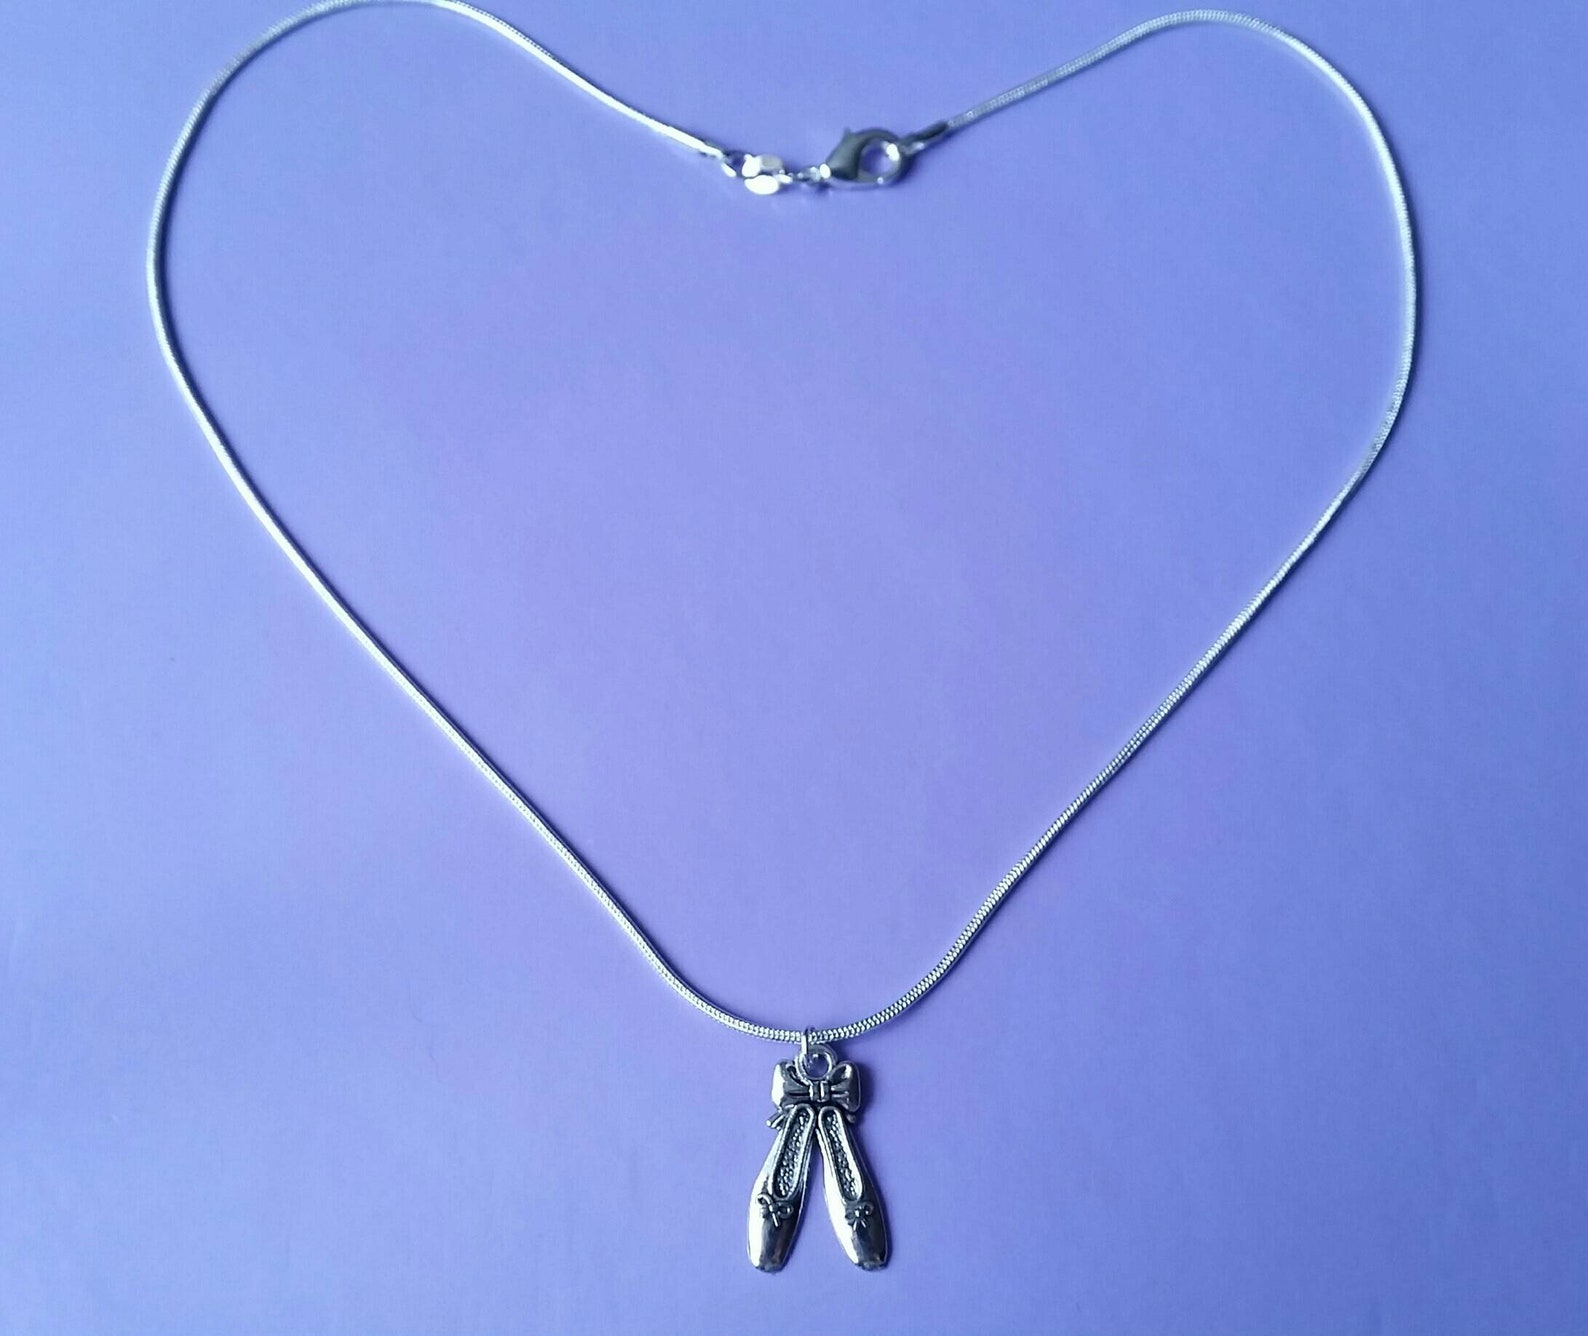 ballet slippers pendant necklace